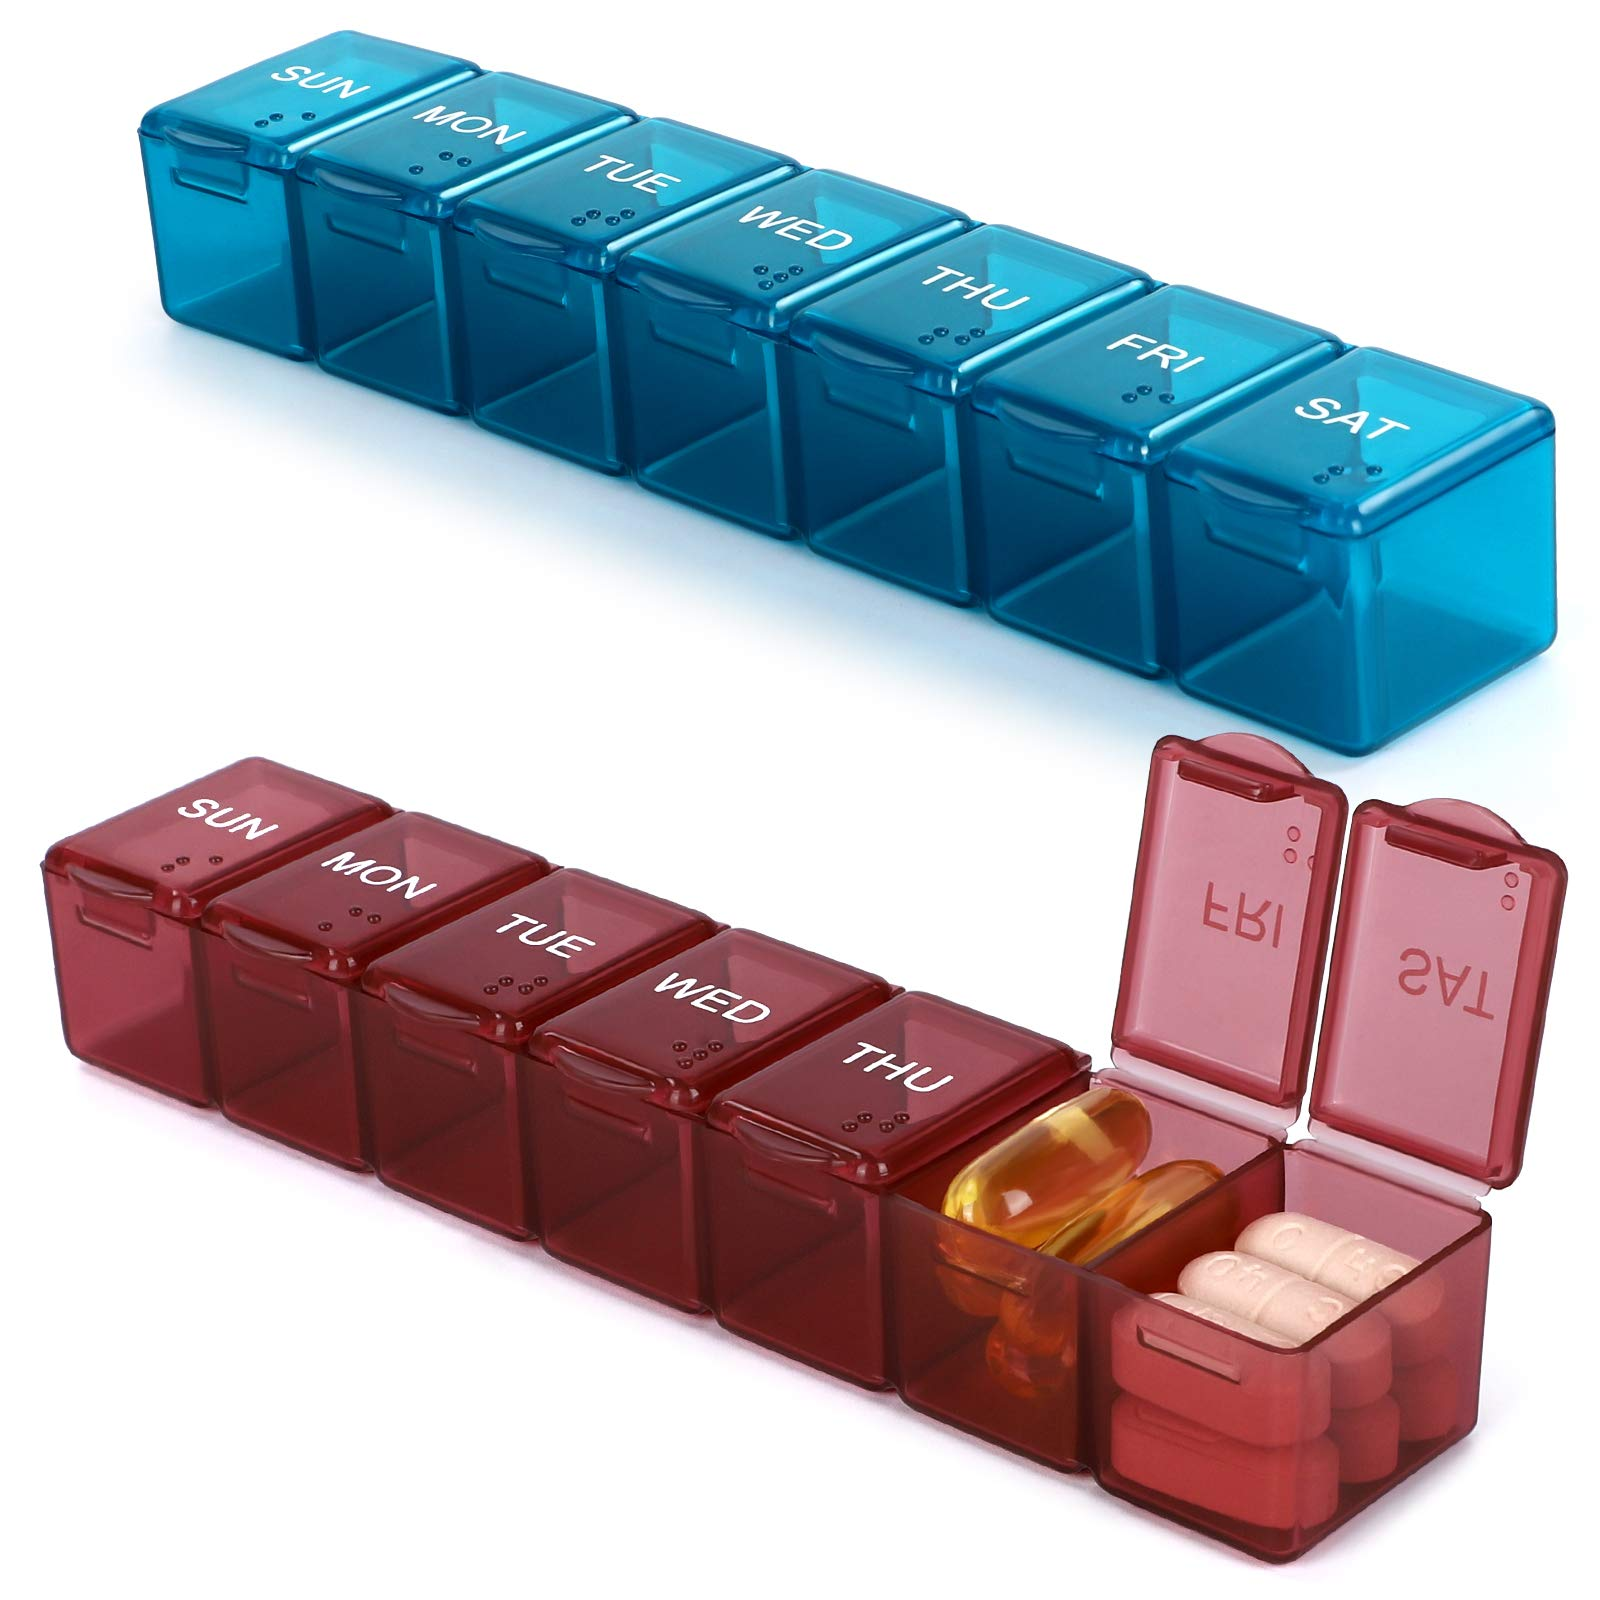 2 Pack Small and Cute Pill Case,Weekly Pill Organizer,Mini Pill Box for Travel,Weekly Pill Dispenser(Emerald Green+Maroon)